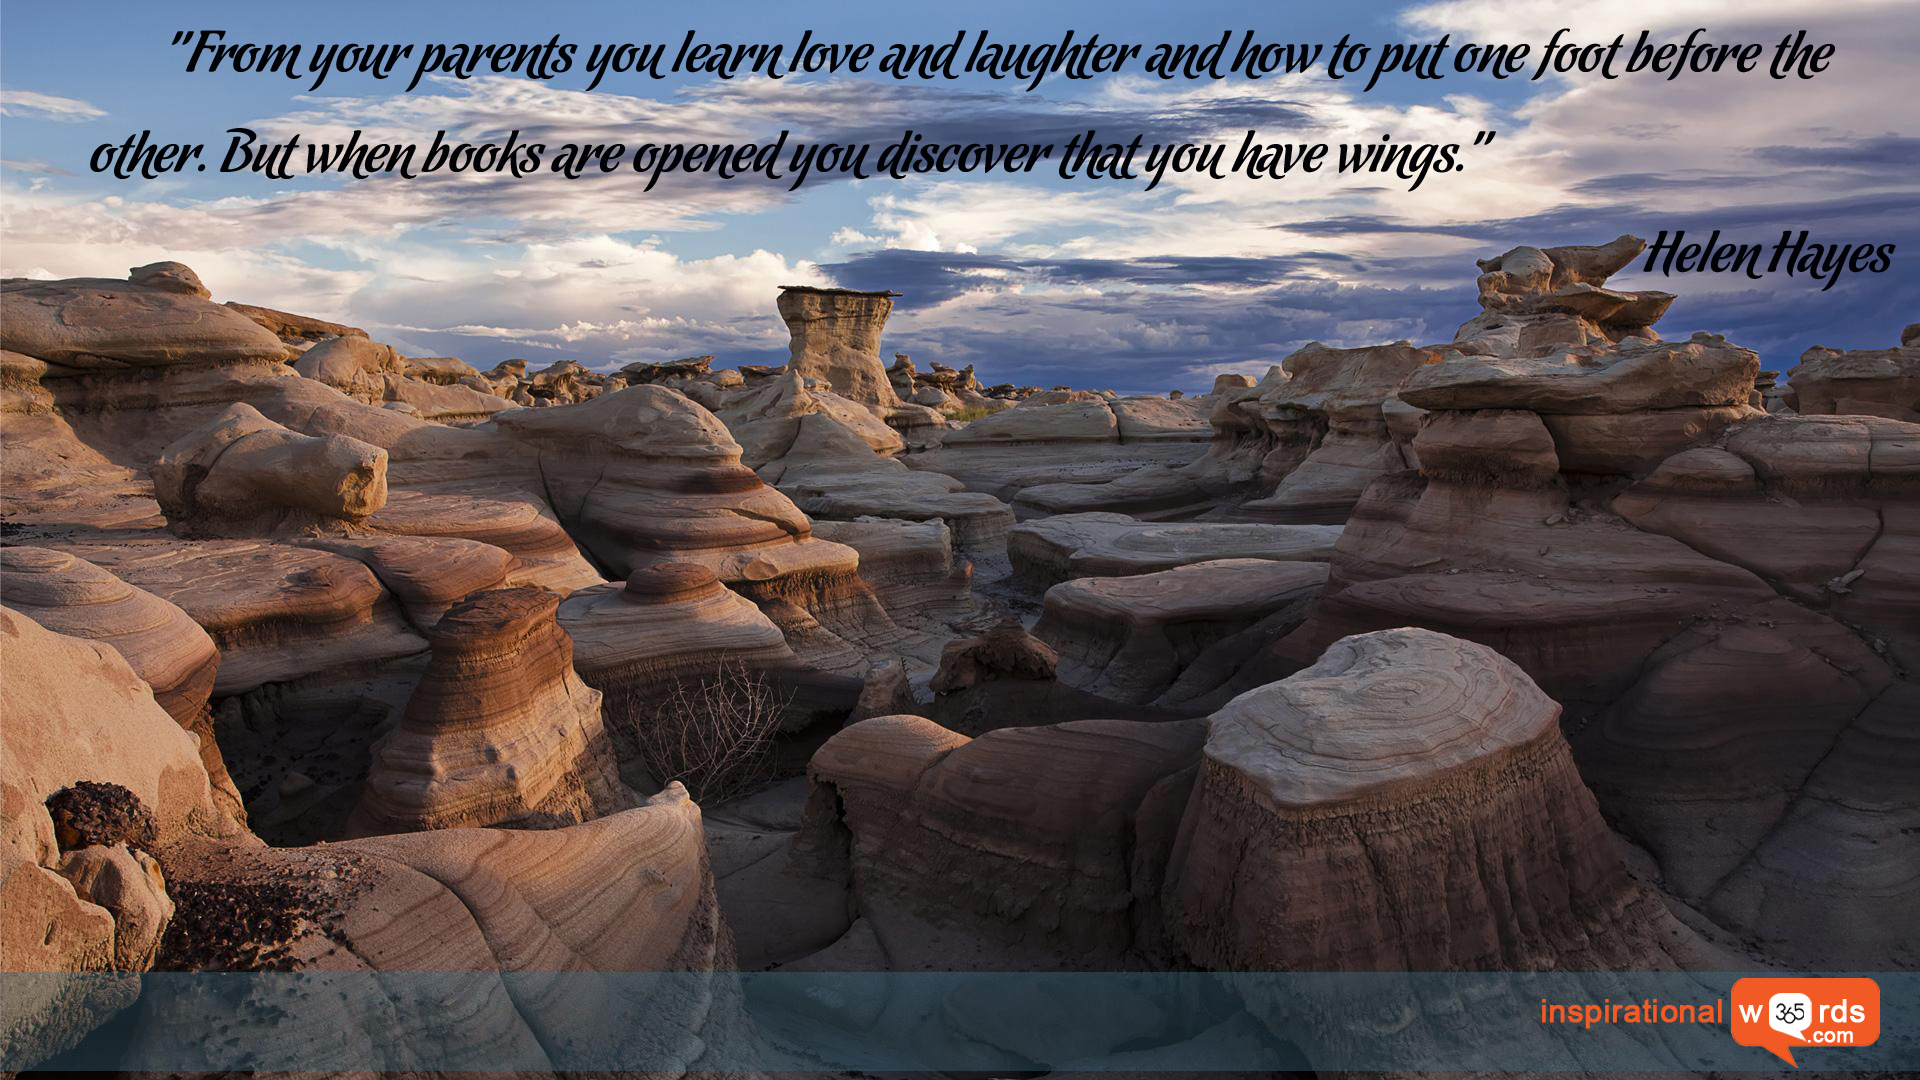 Inspirational Wallpaper Quote by Helen Hayes